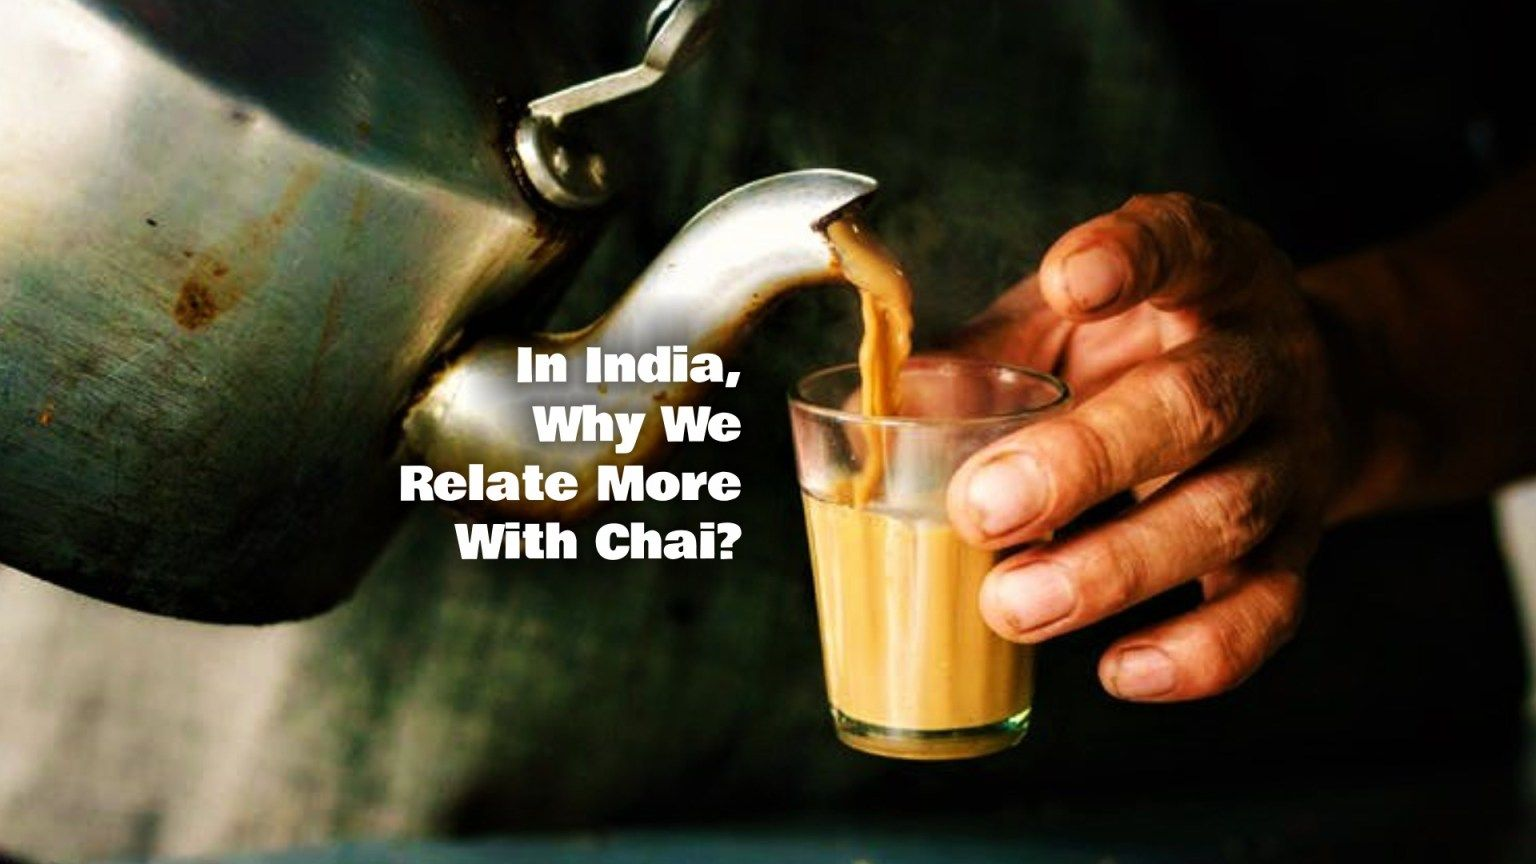 In India, Why We Relate More With Chai? Because We Are Alike.